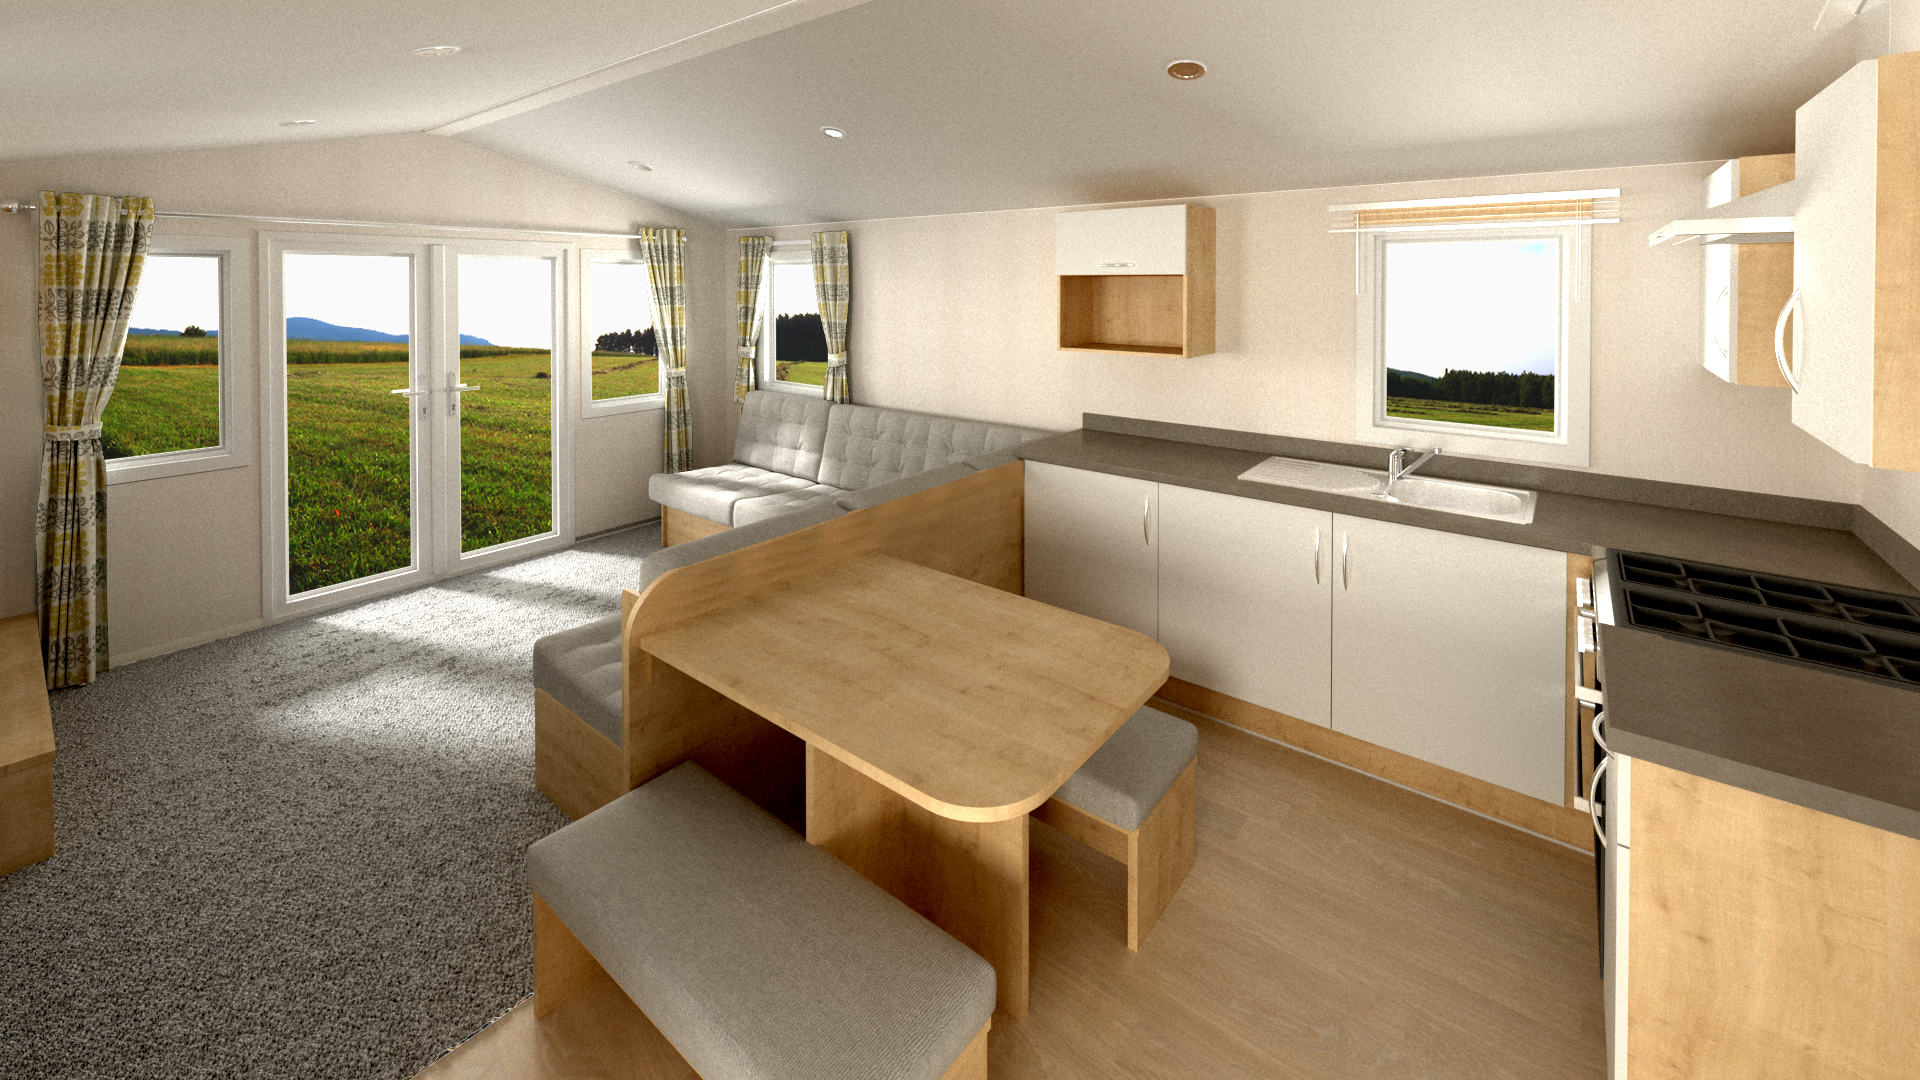 Willerby Grasmere: Static Caravans and Holiday Homes for Sale on Caravan Parks, Whitby, North Yorkshire Large Image 1